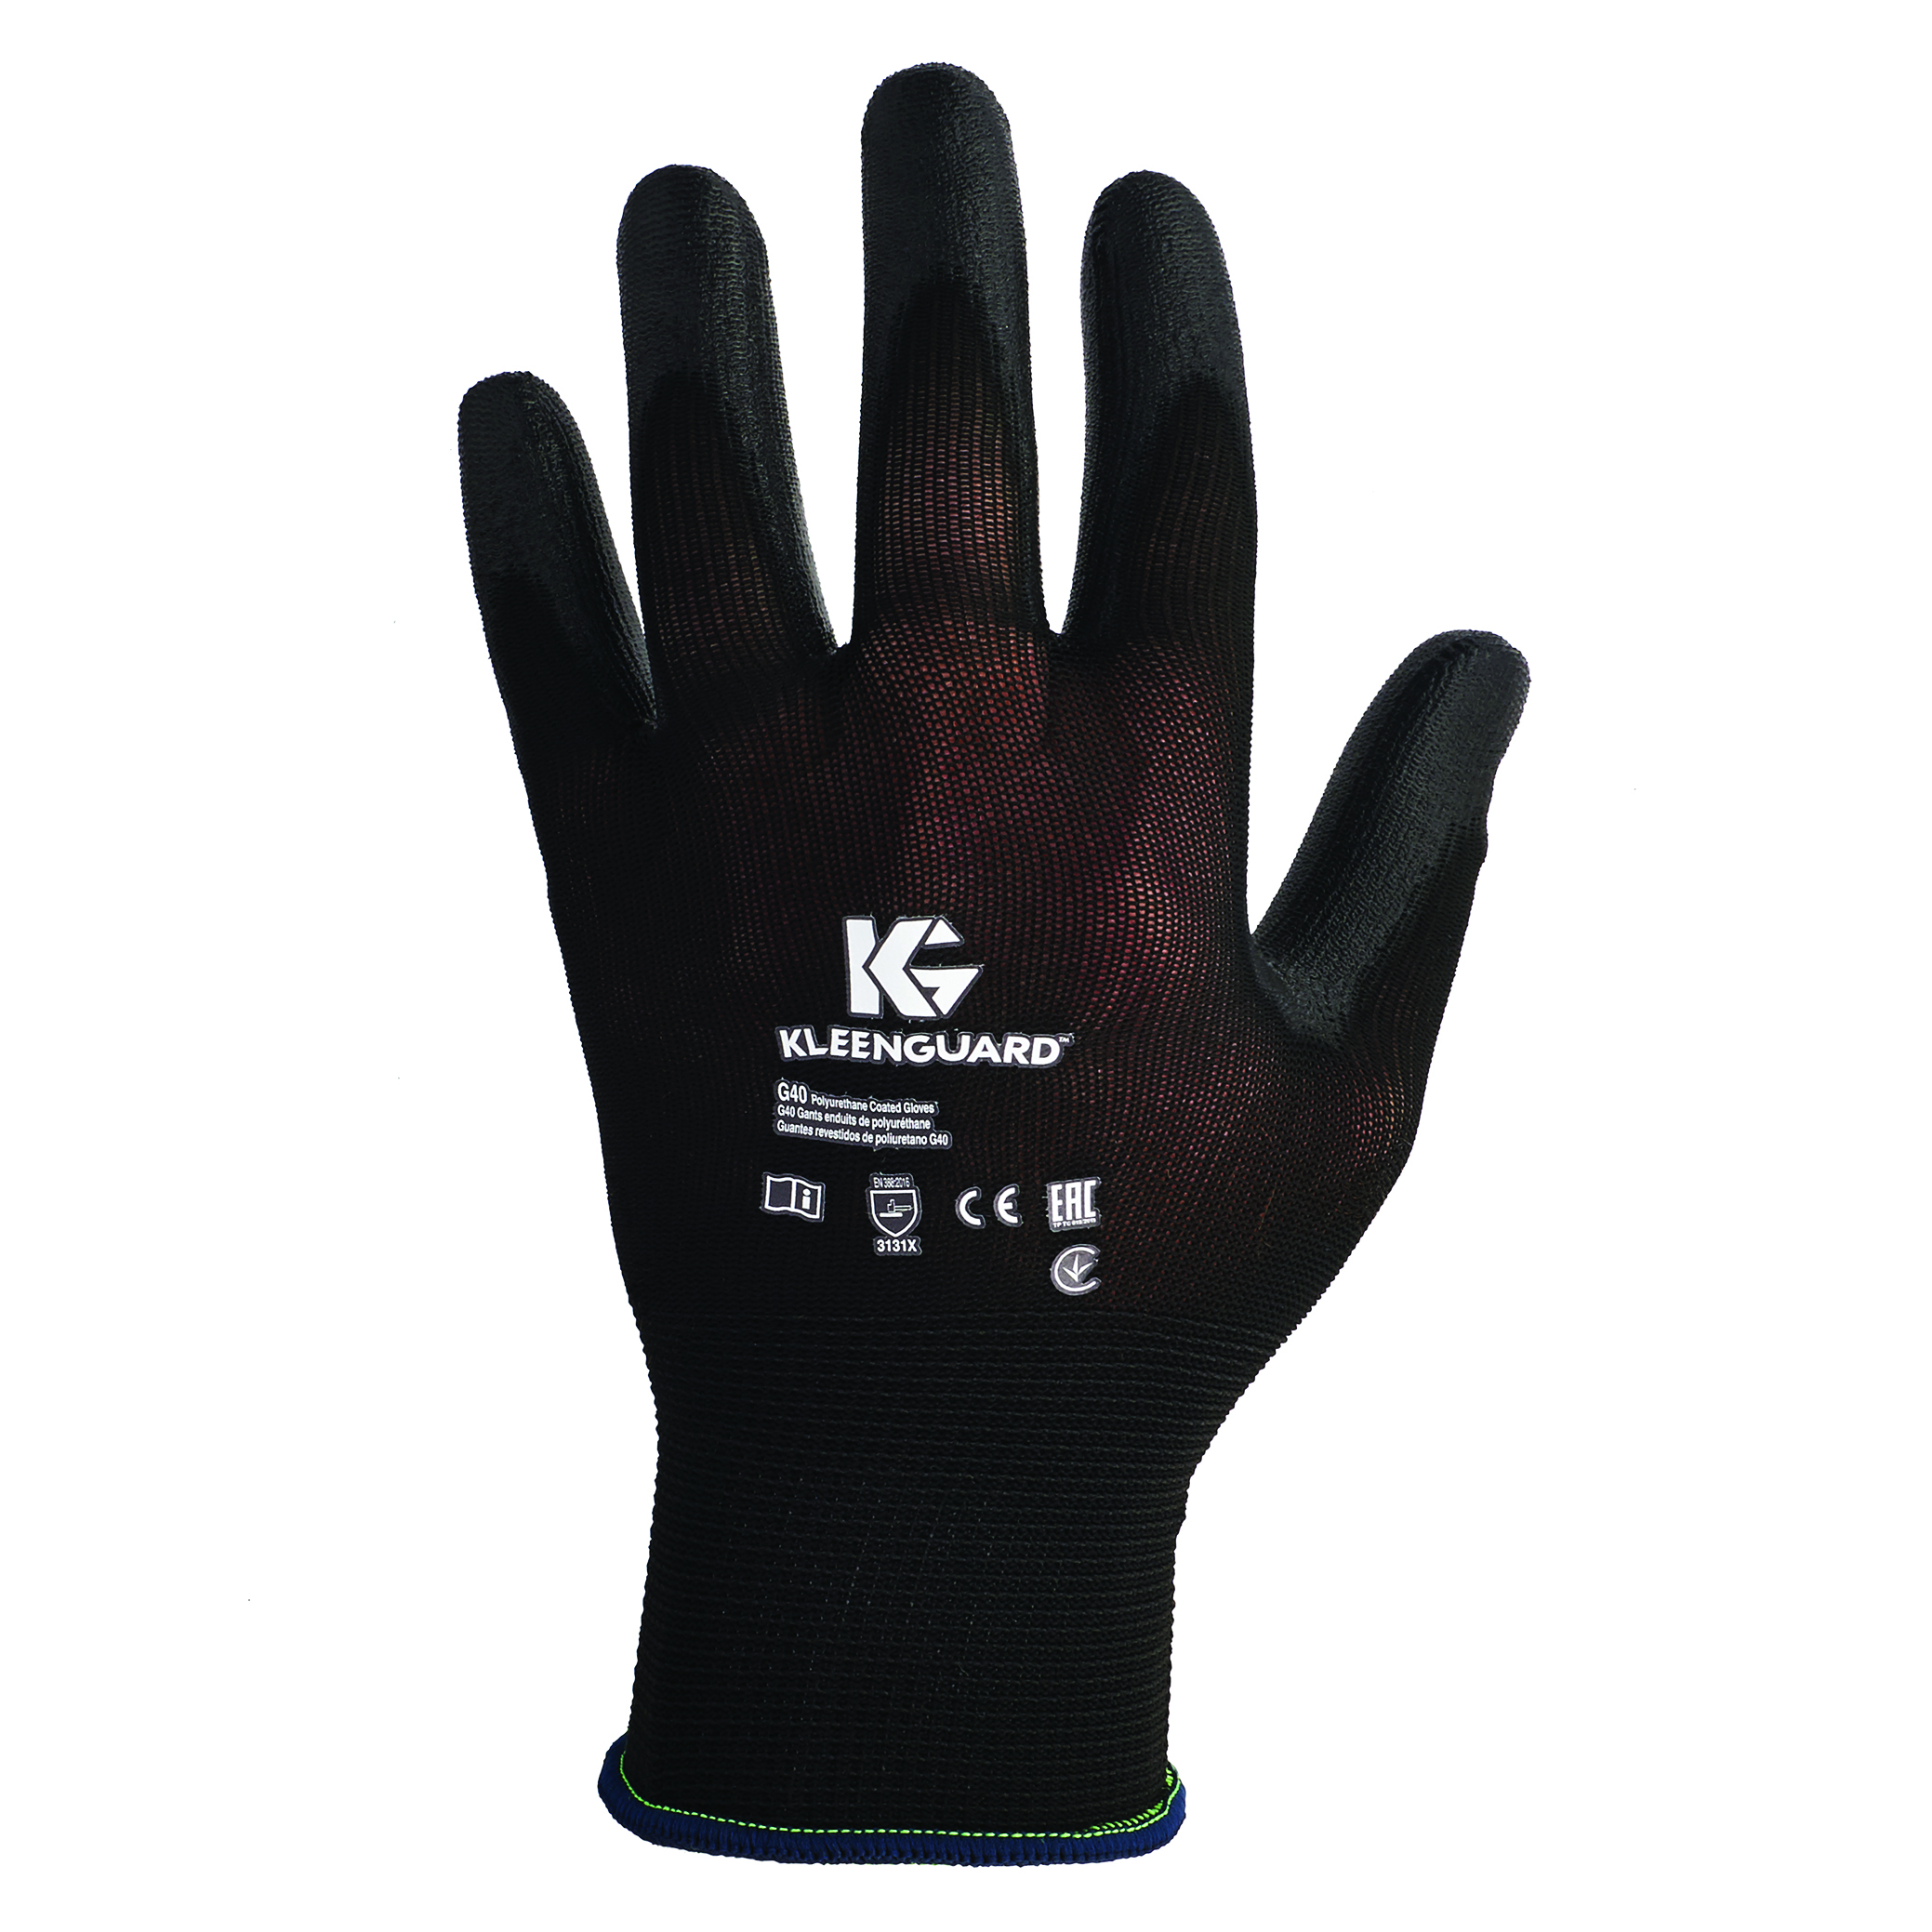 13838 - Kleenguard® G40 Nitrile Coated Gloves-General Purpose Gloves-Kleenguard* G40 Polyurethane Coated Gloves-Size 8/Medium---UOM: 12/PK